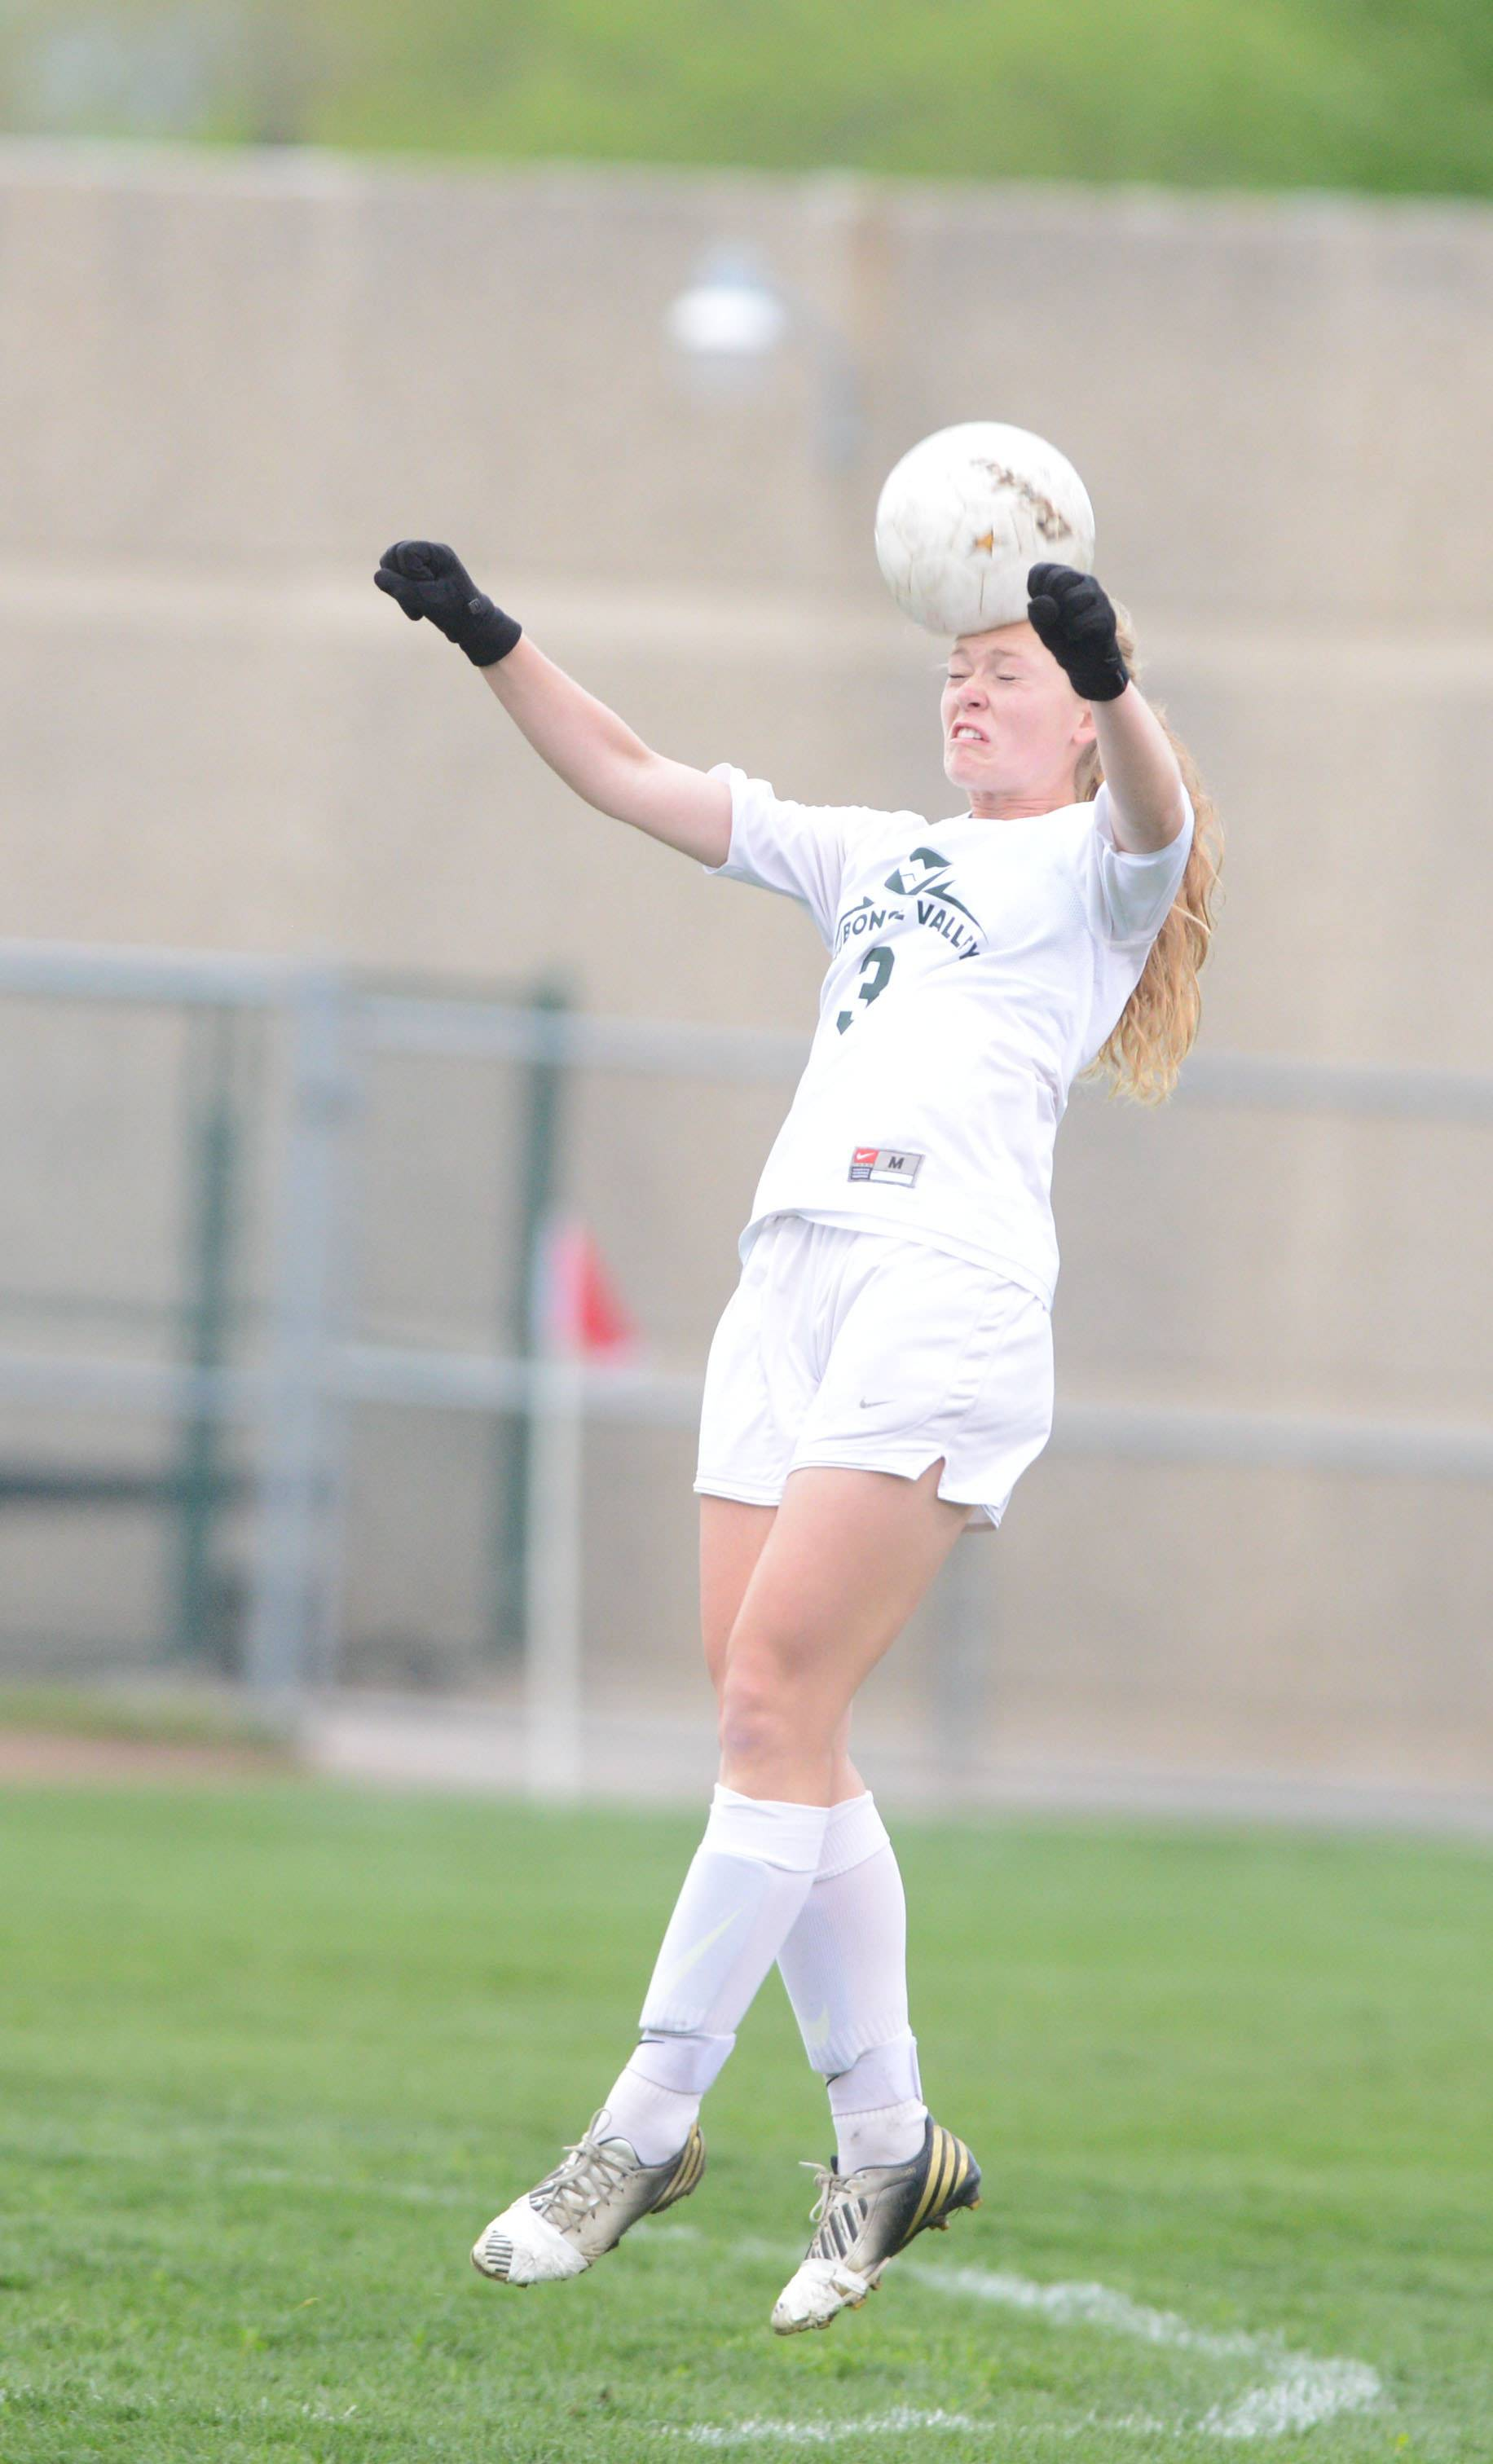 Morgan Kemerling of Waubonsie goes up for ahead shot during the St. Charles North at Waubonsie Valley girls soccer game Wednesday.